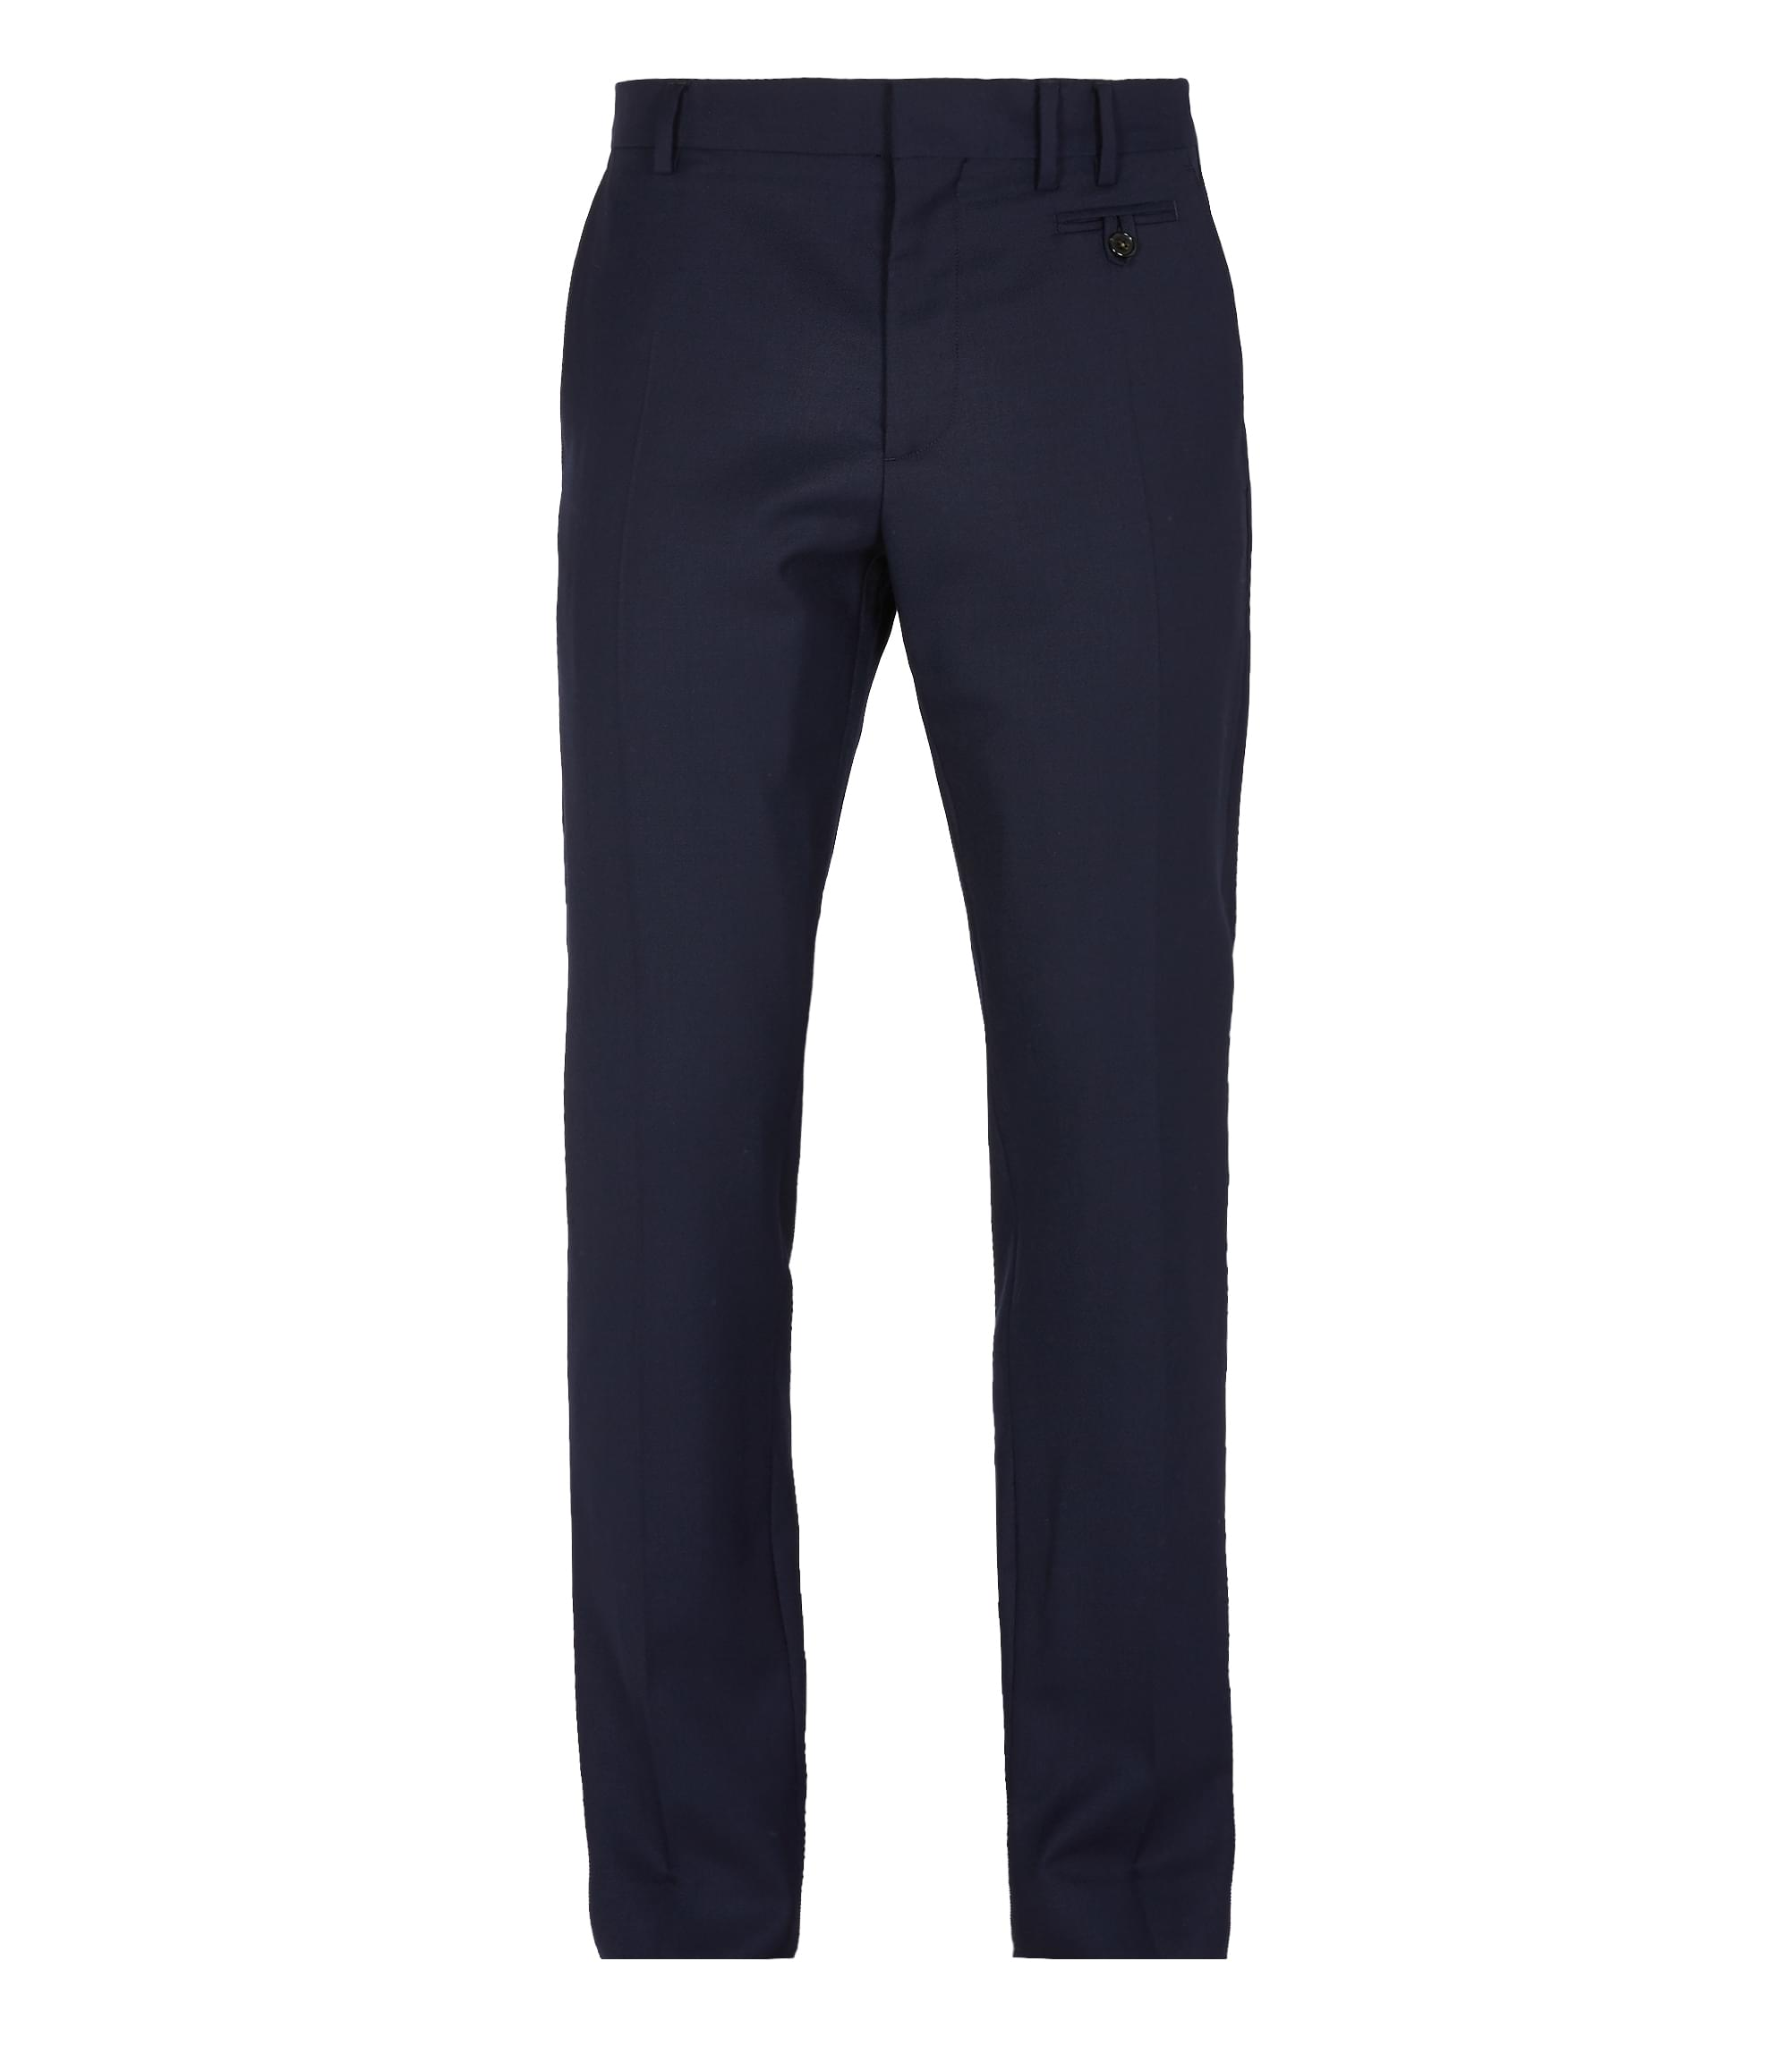 Vivienne Westwood Classic Trousers Navy